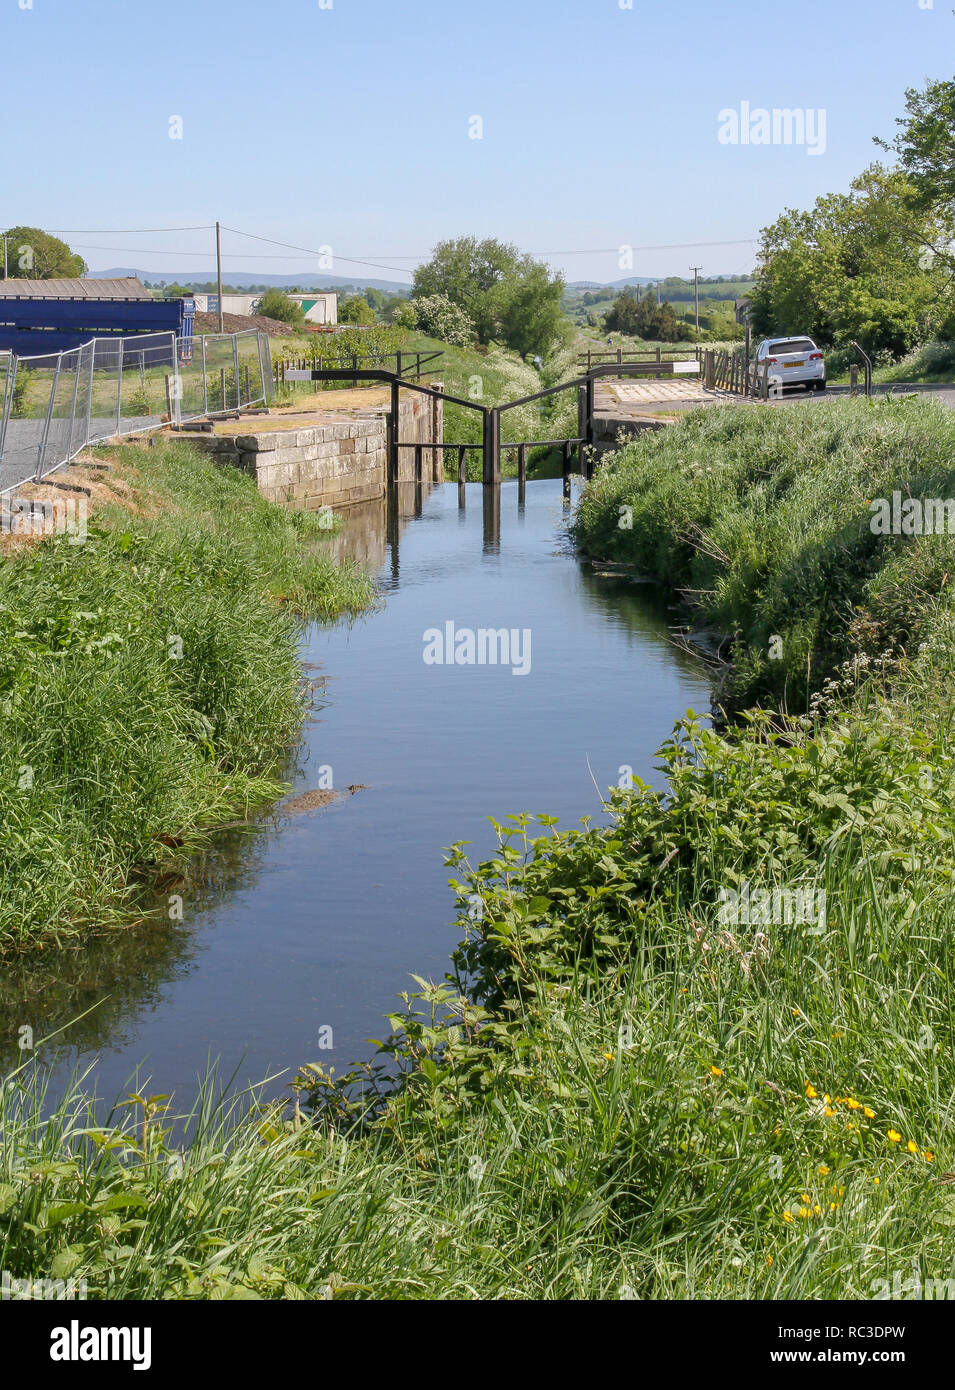 Overgrown canal and former canal lock on the Newry Canal at Poyntzpass County Down, Northern Ireland. - Stock Image